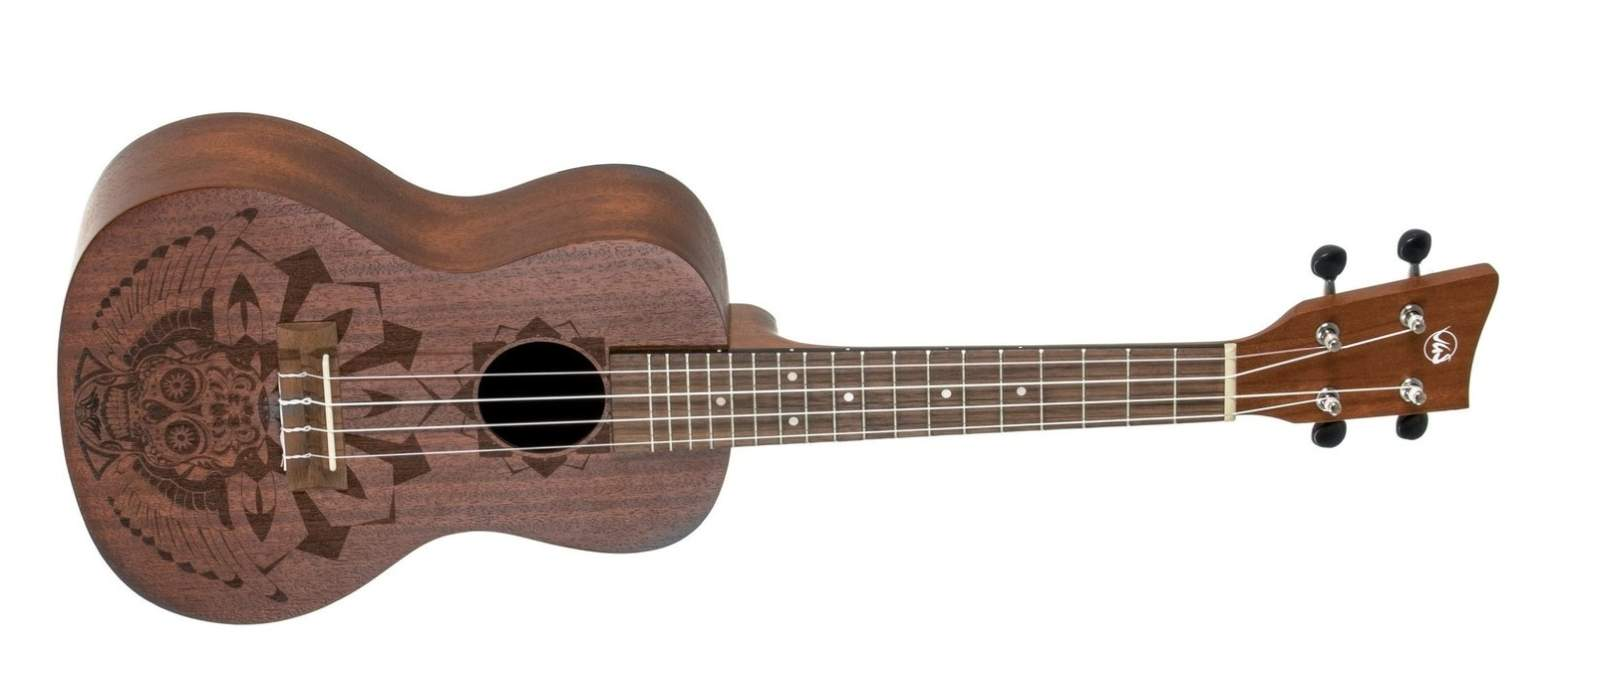 VGS Manoa KT CO Mexico Concert Ukulele